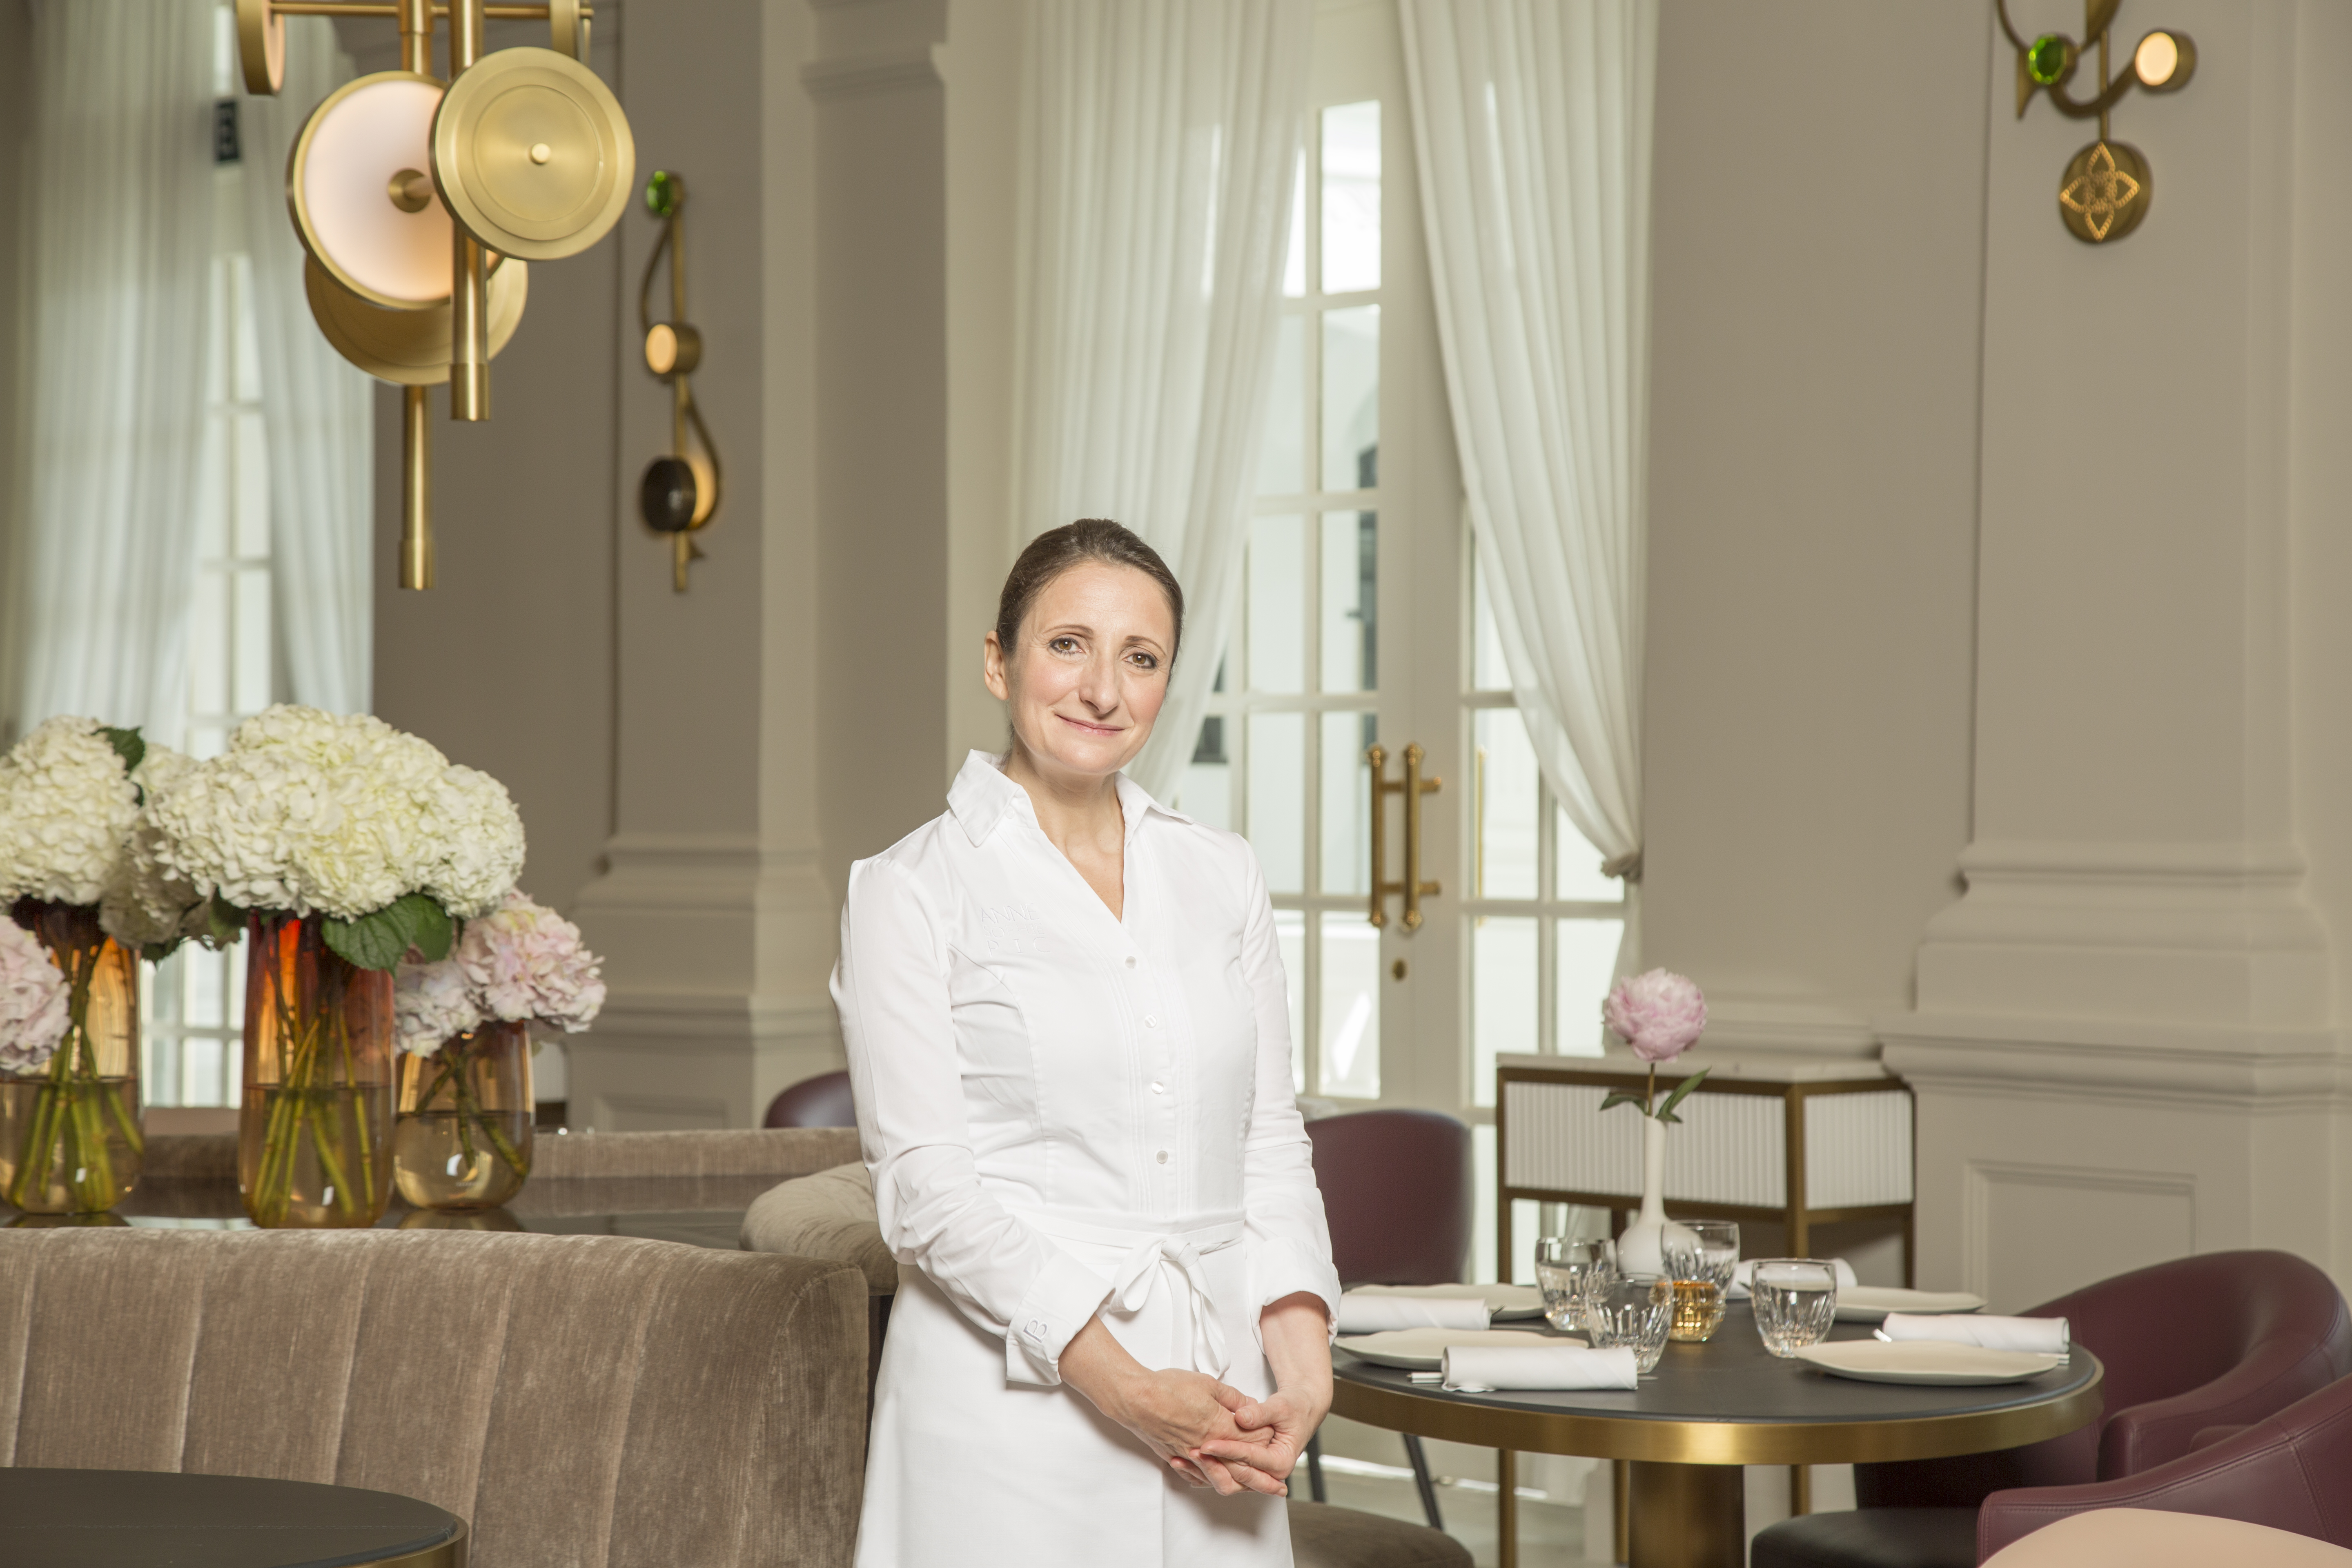 Three Michelin-starred Chef Anne-Sophie Pic's newgastronomic creations will serve as a treat for guests upon the return of dining-in at restaurants in Singapore after Phase Two (Heightened Alert) was lifted in the city-state, an official release stated.